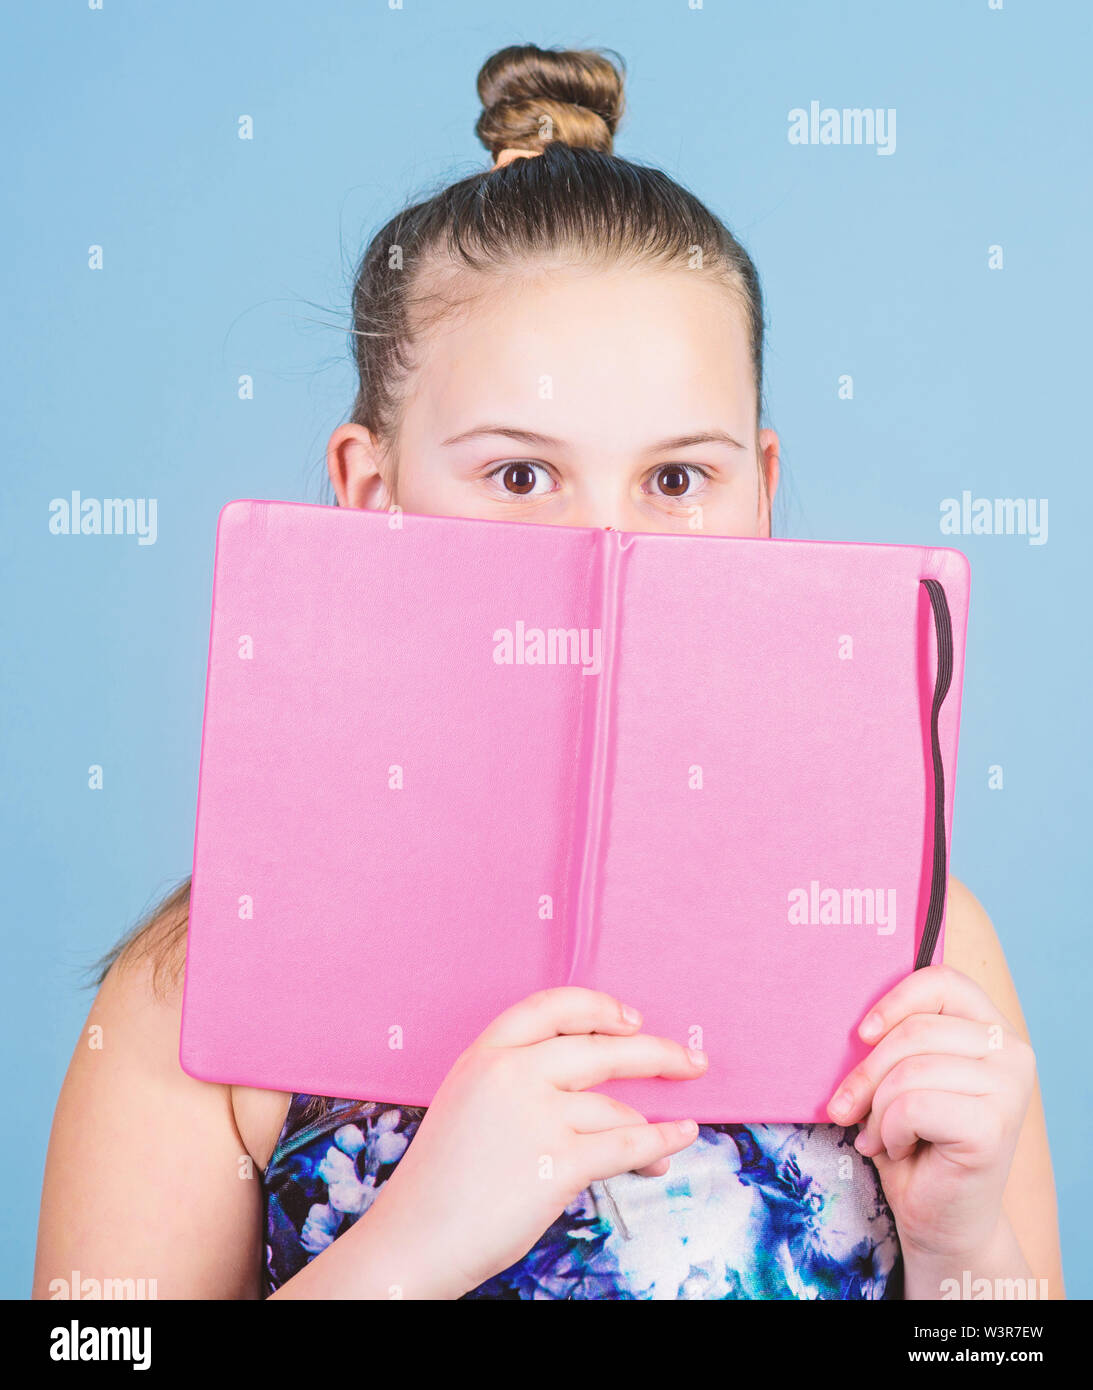 learn reading books. secret story. workbooks for writing. school diaries for making notes. small girl with note book. school child with notepad. educa - Stock Image